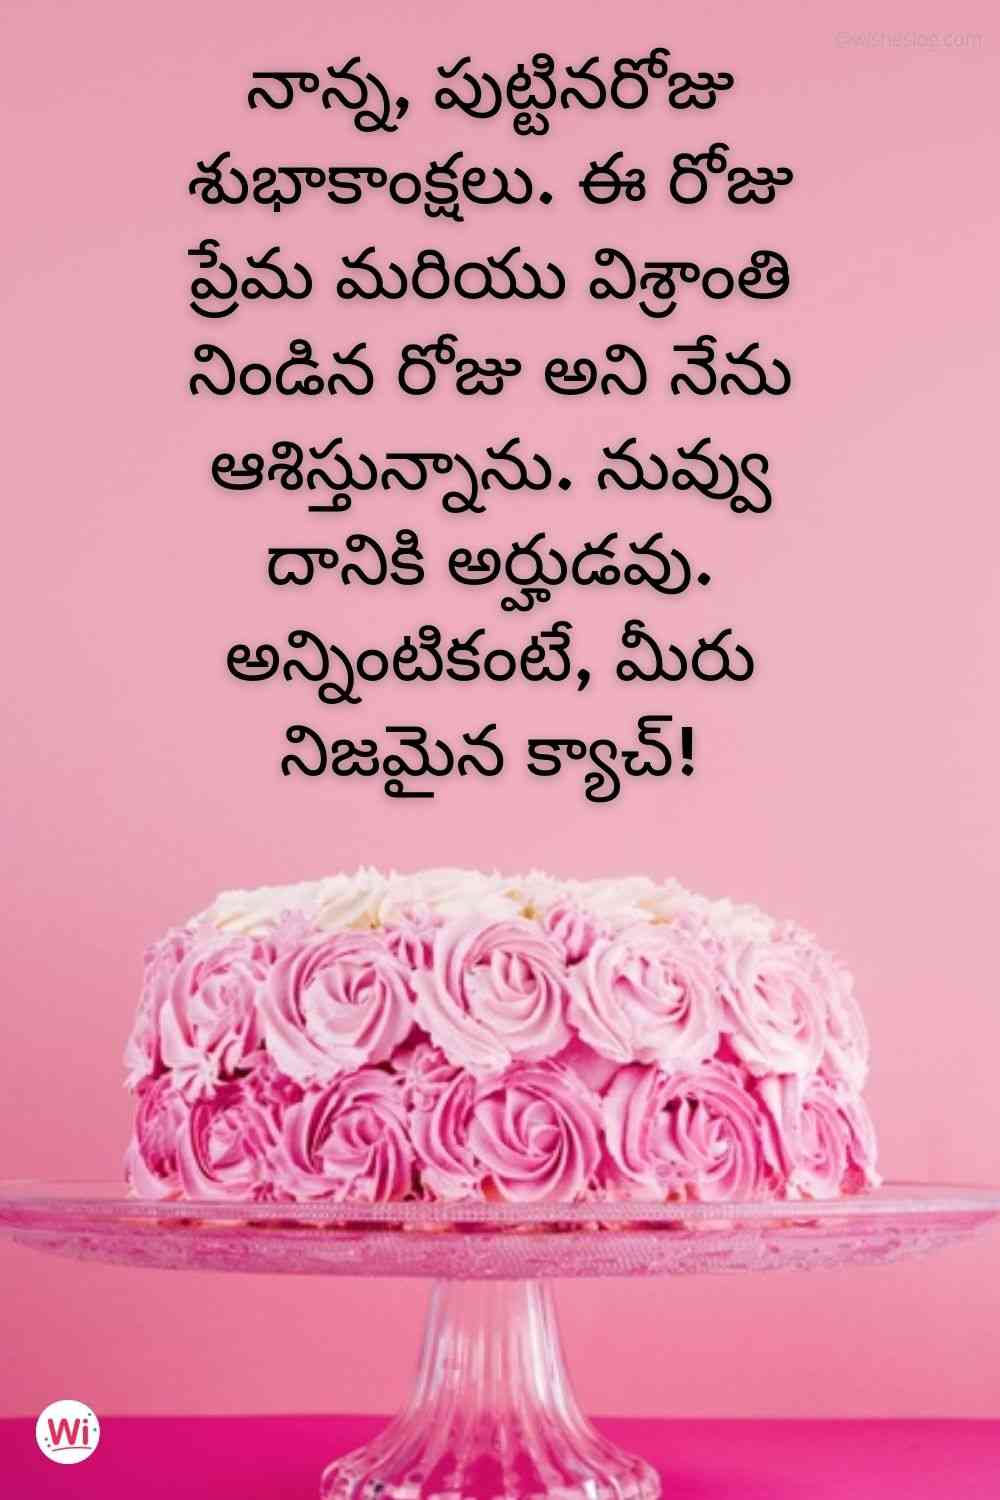 happy birthday images in telugu for dad